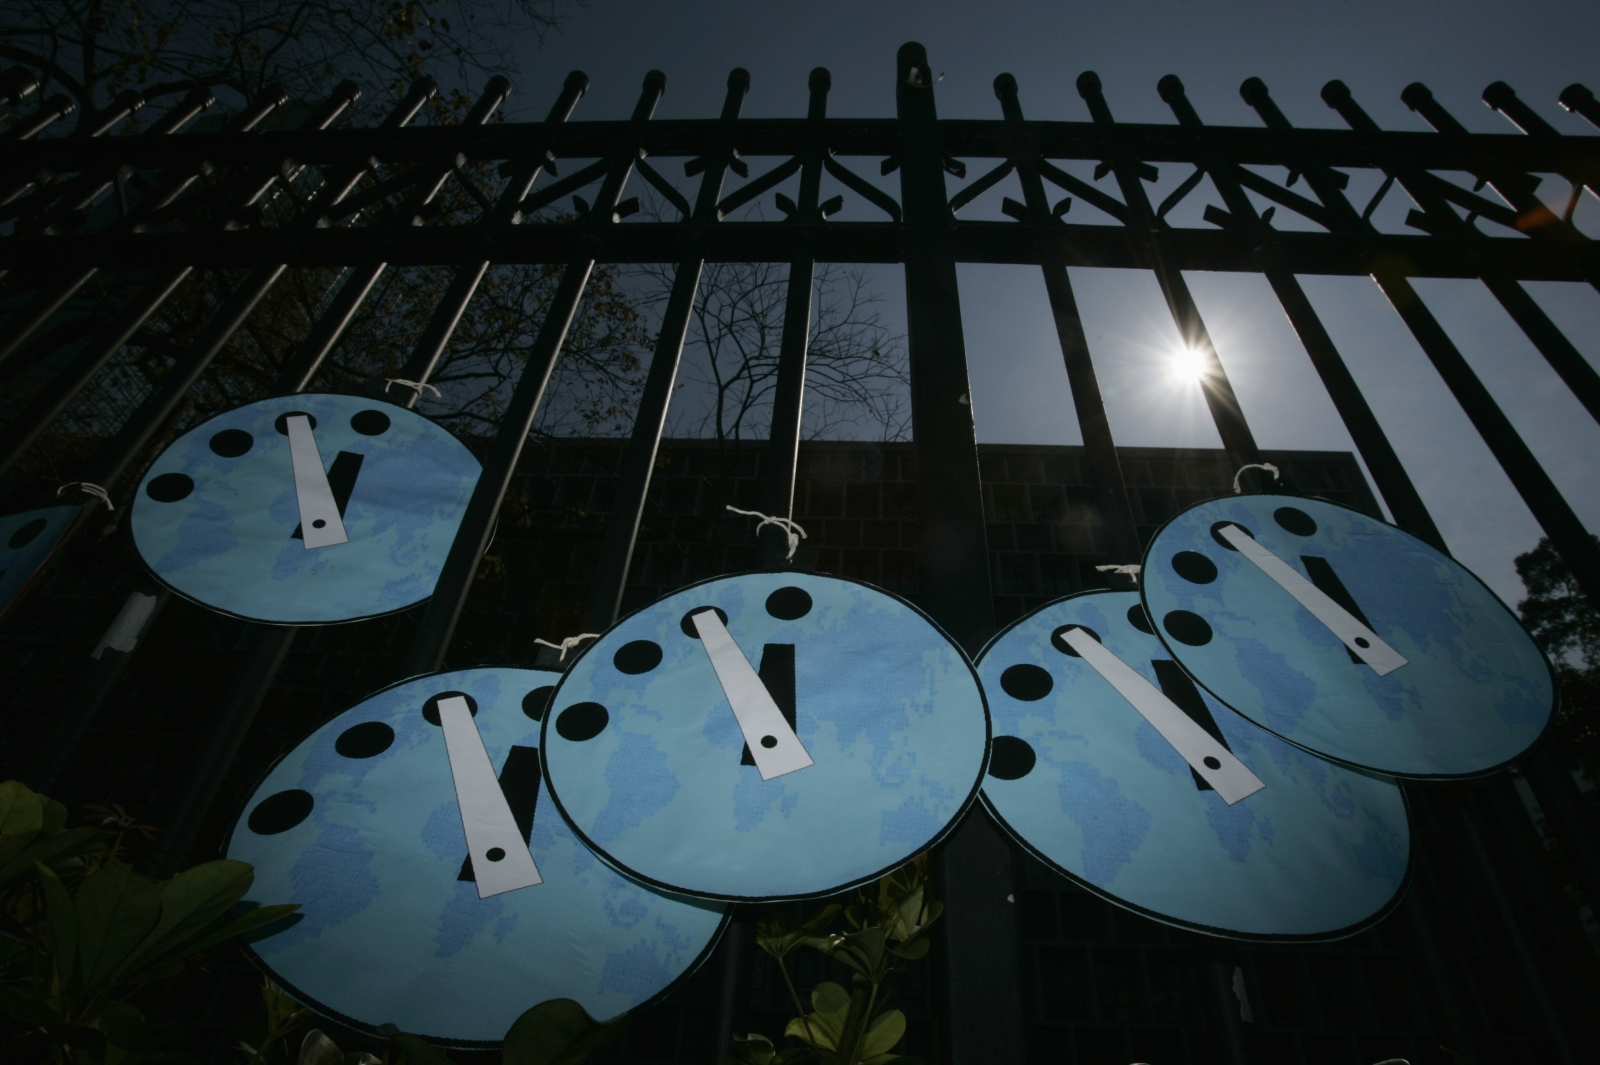 The Doomsday Clock is ticking - will it go forward to four minutes to midnight this year?